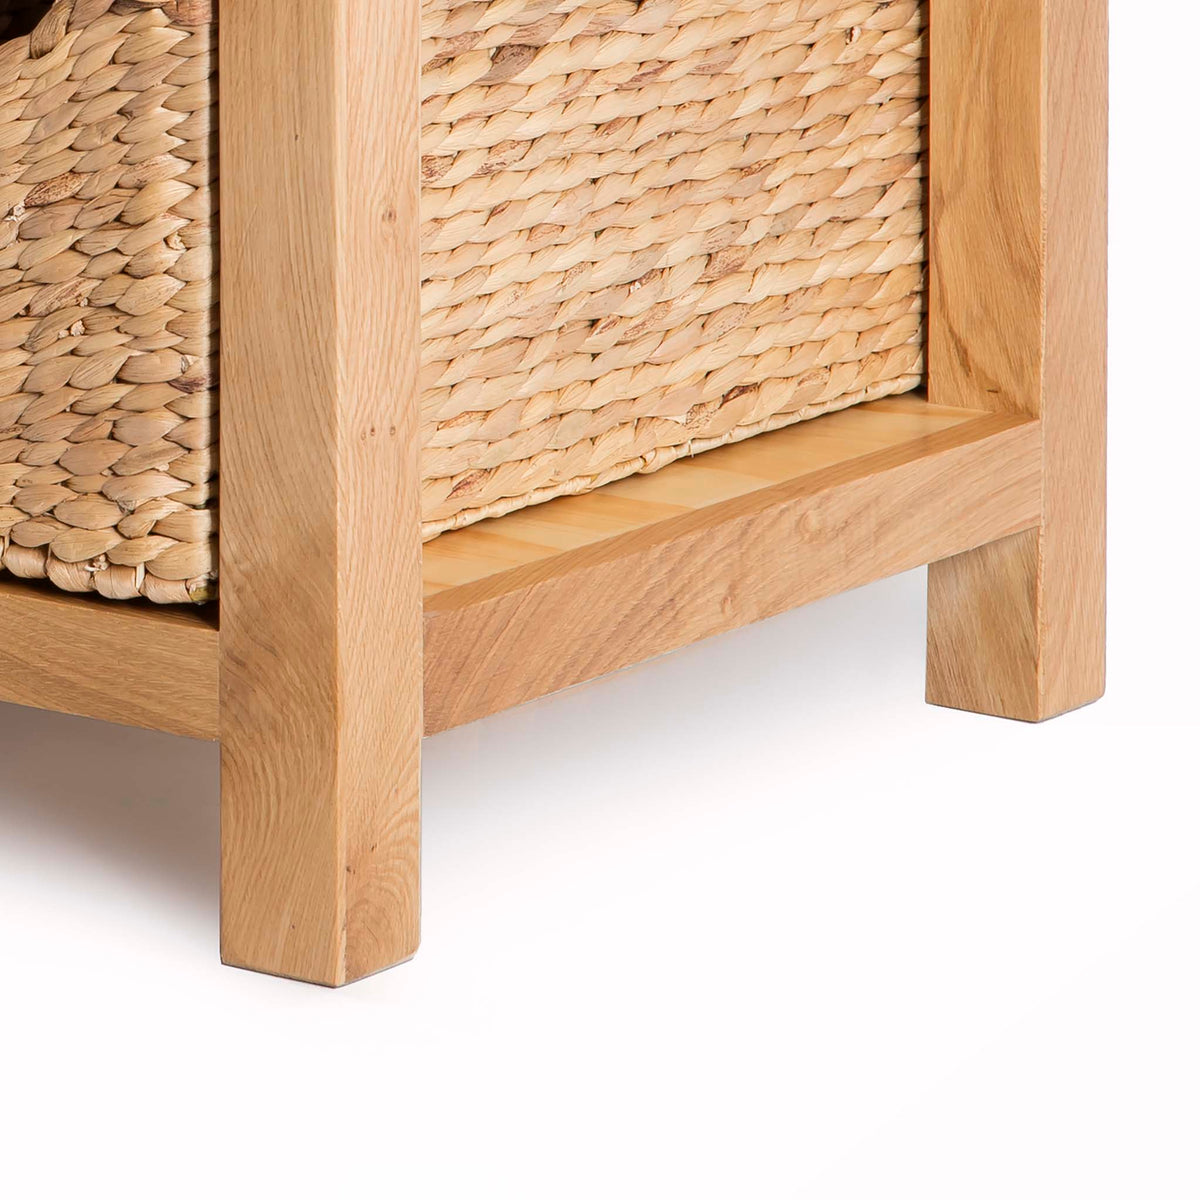 London Oak Coffee Table with Baskets by Roseland Furniture - Close up of feet on table